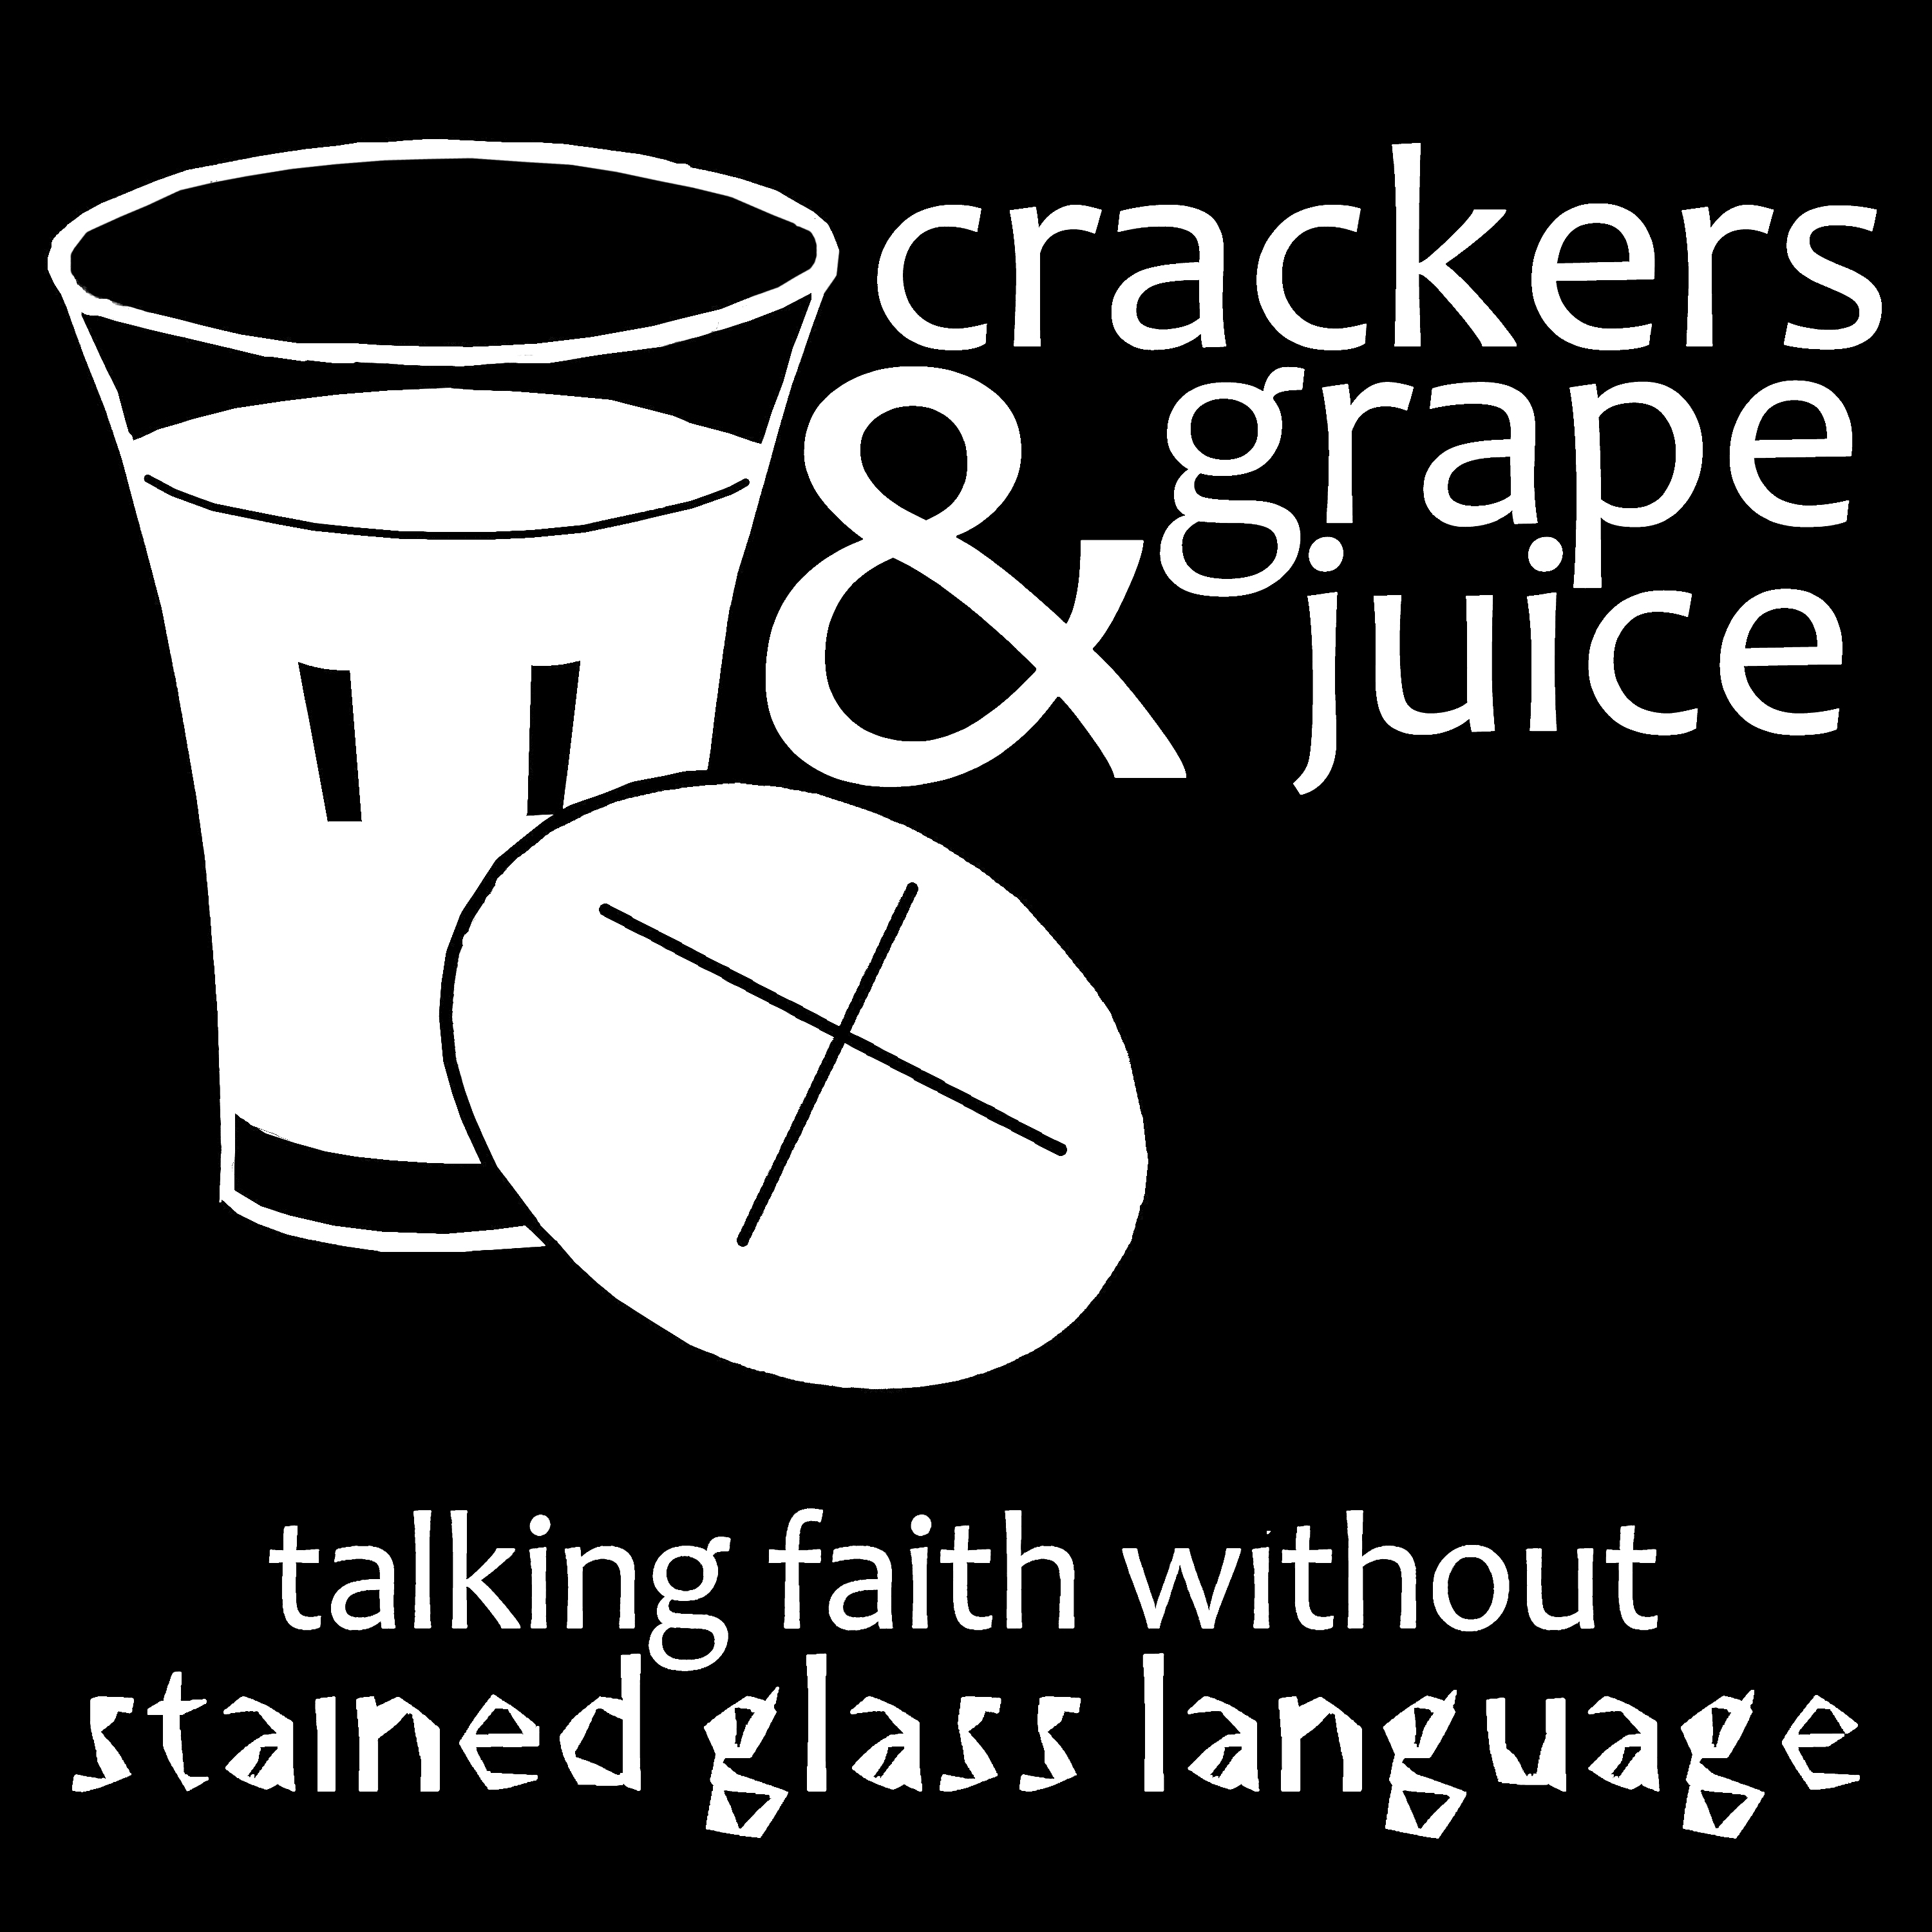 Crackers & Grape Juice Silhouette Tagline Inverted